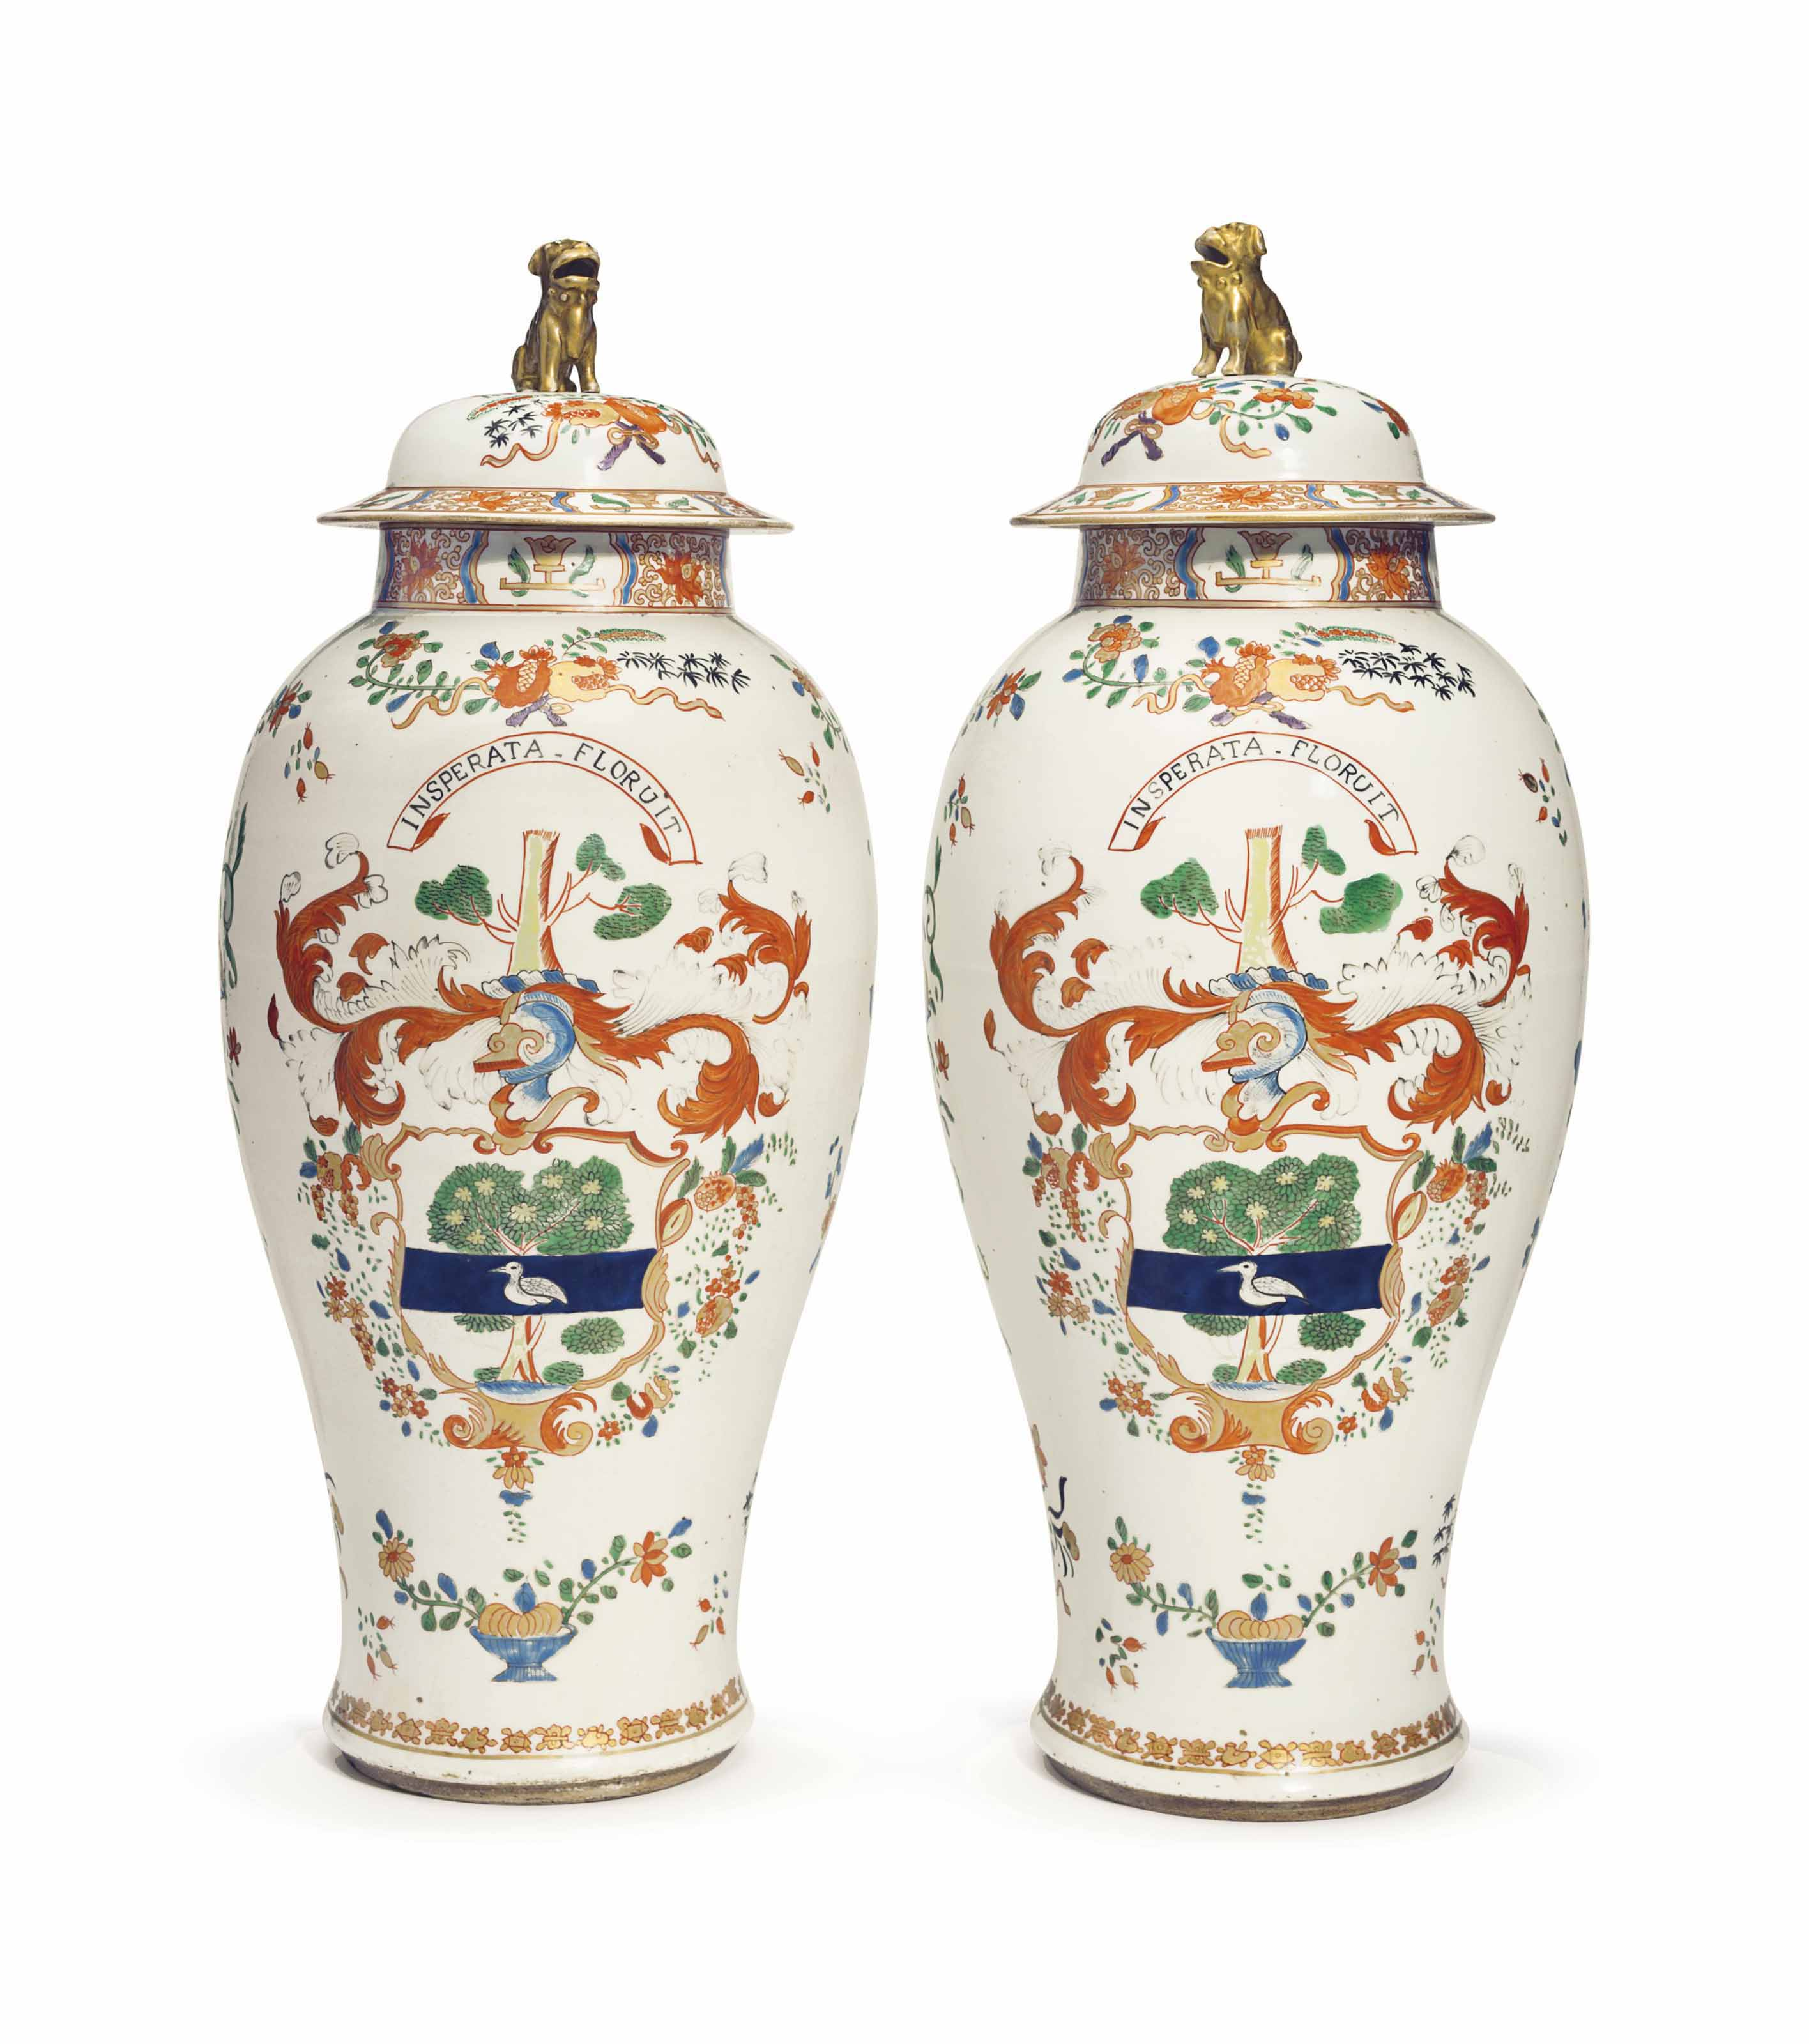 A PAIR OF CHINESE EXPORT-STYLE LARGE ARMORIAL VASES AND COVERS